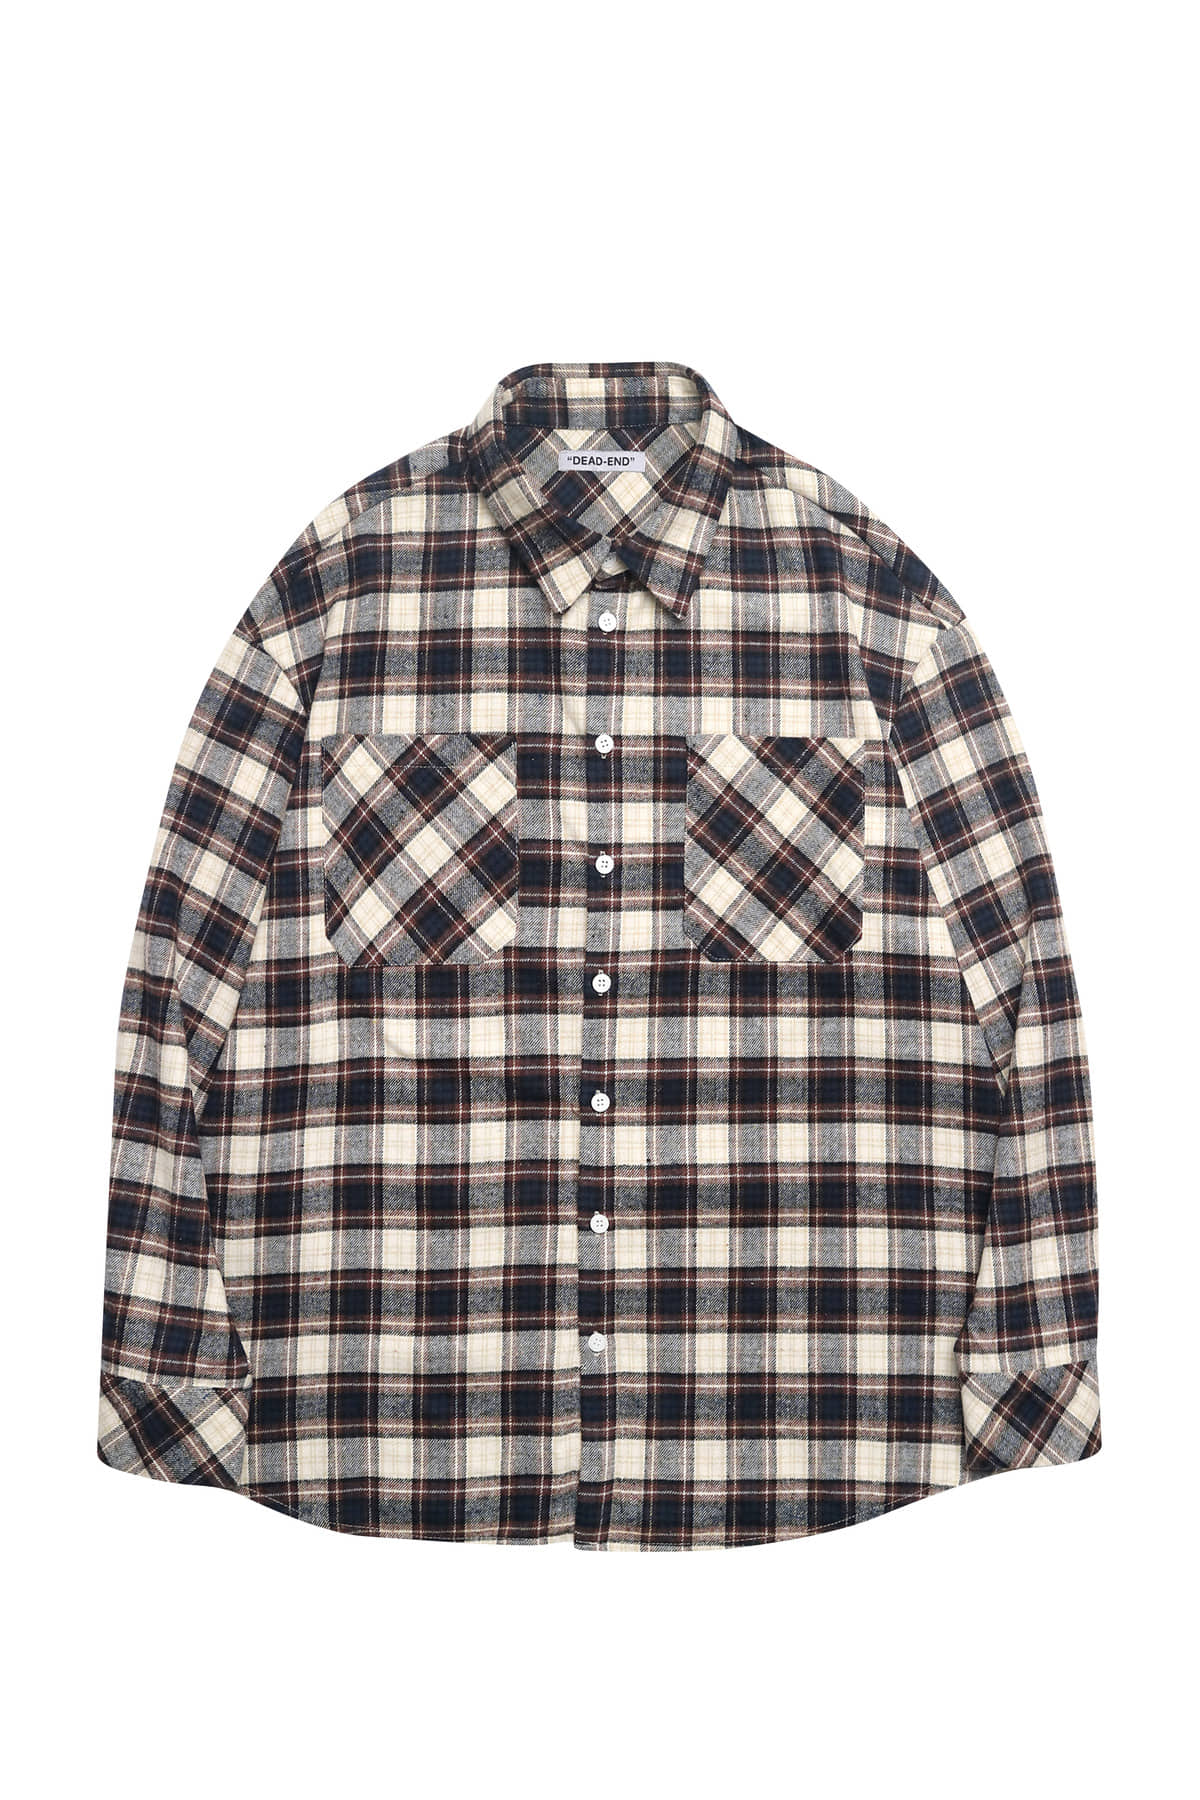 BROWN FLANNEL SHIRTS